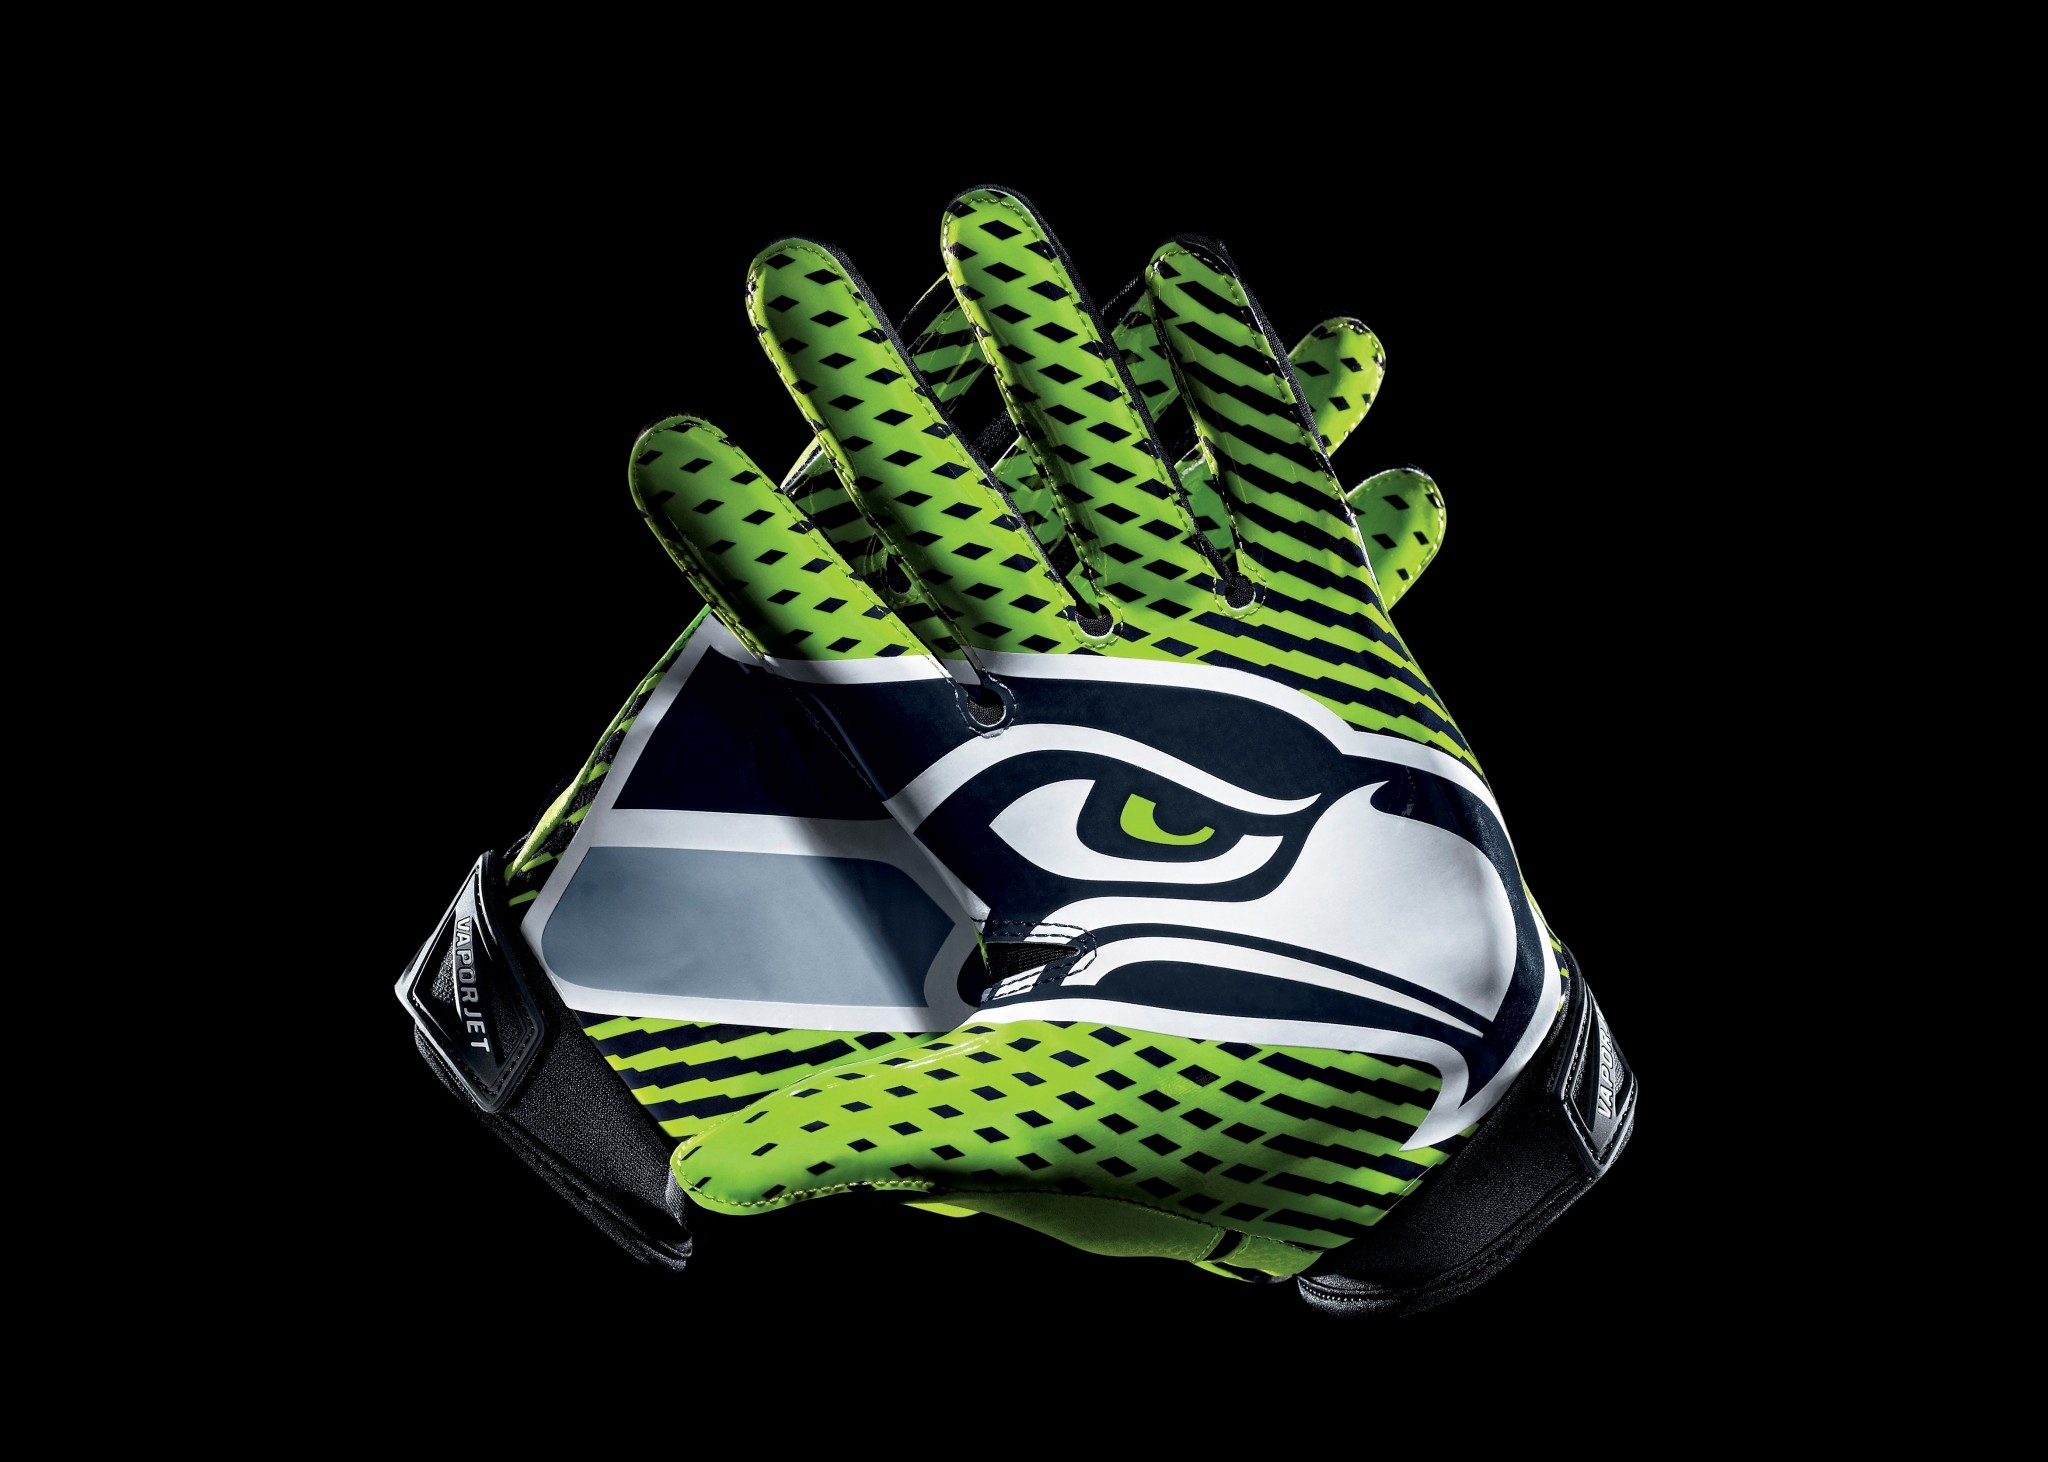 Seattle Seahawks Wallpaper Images 72 Images